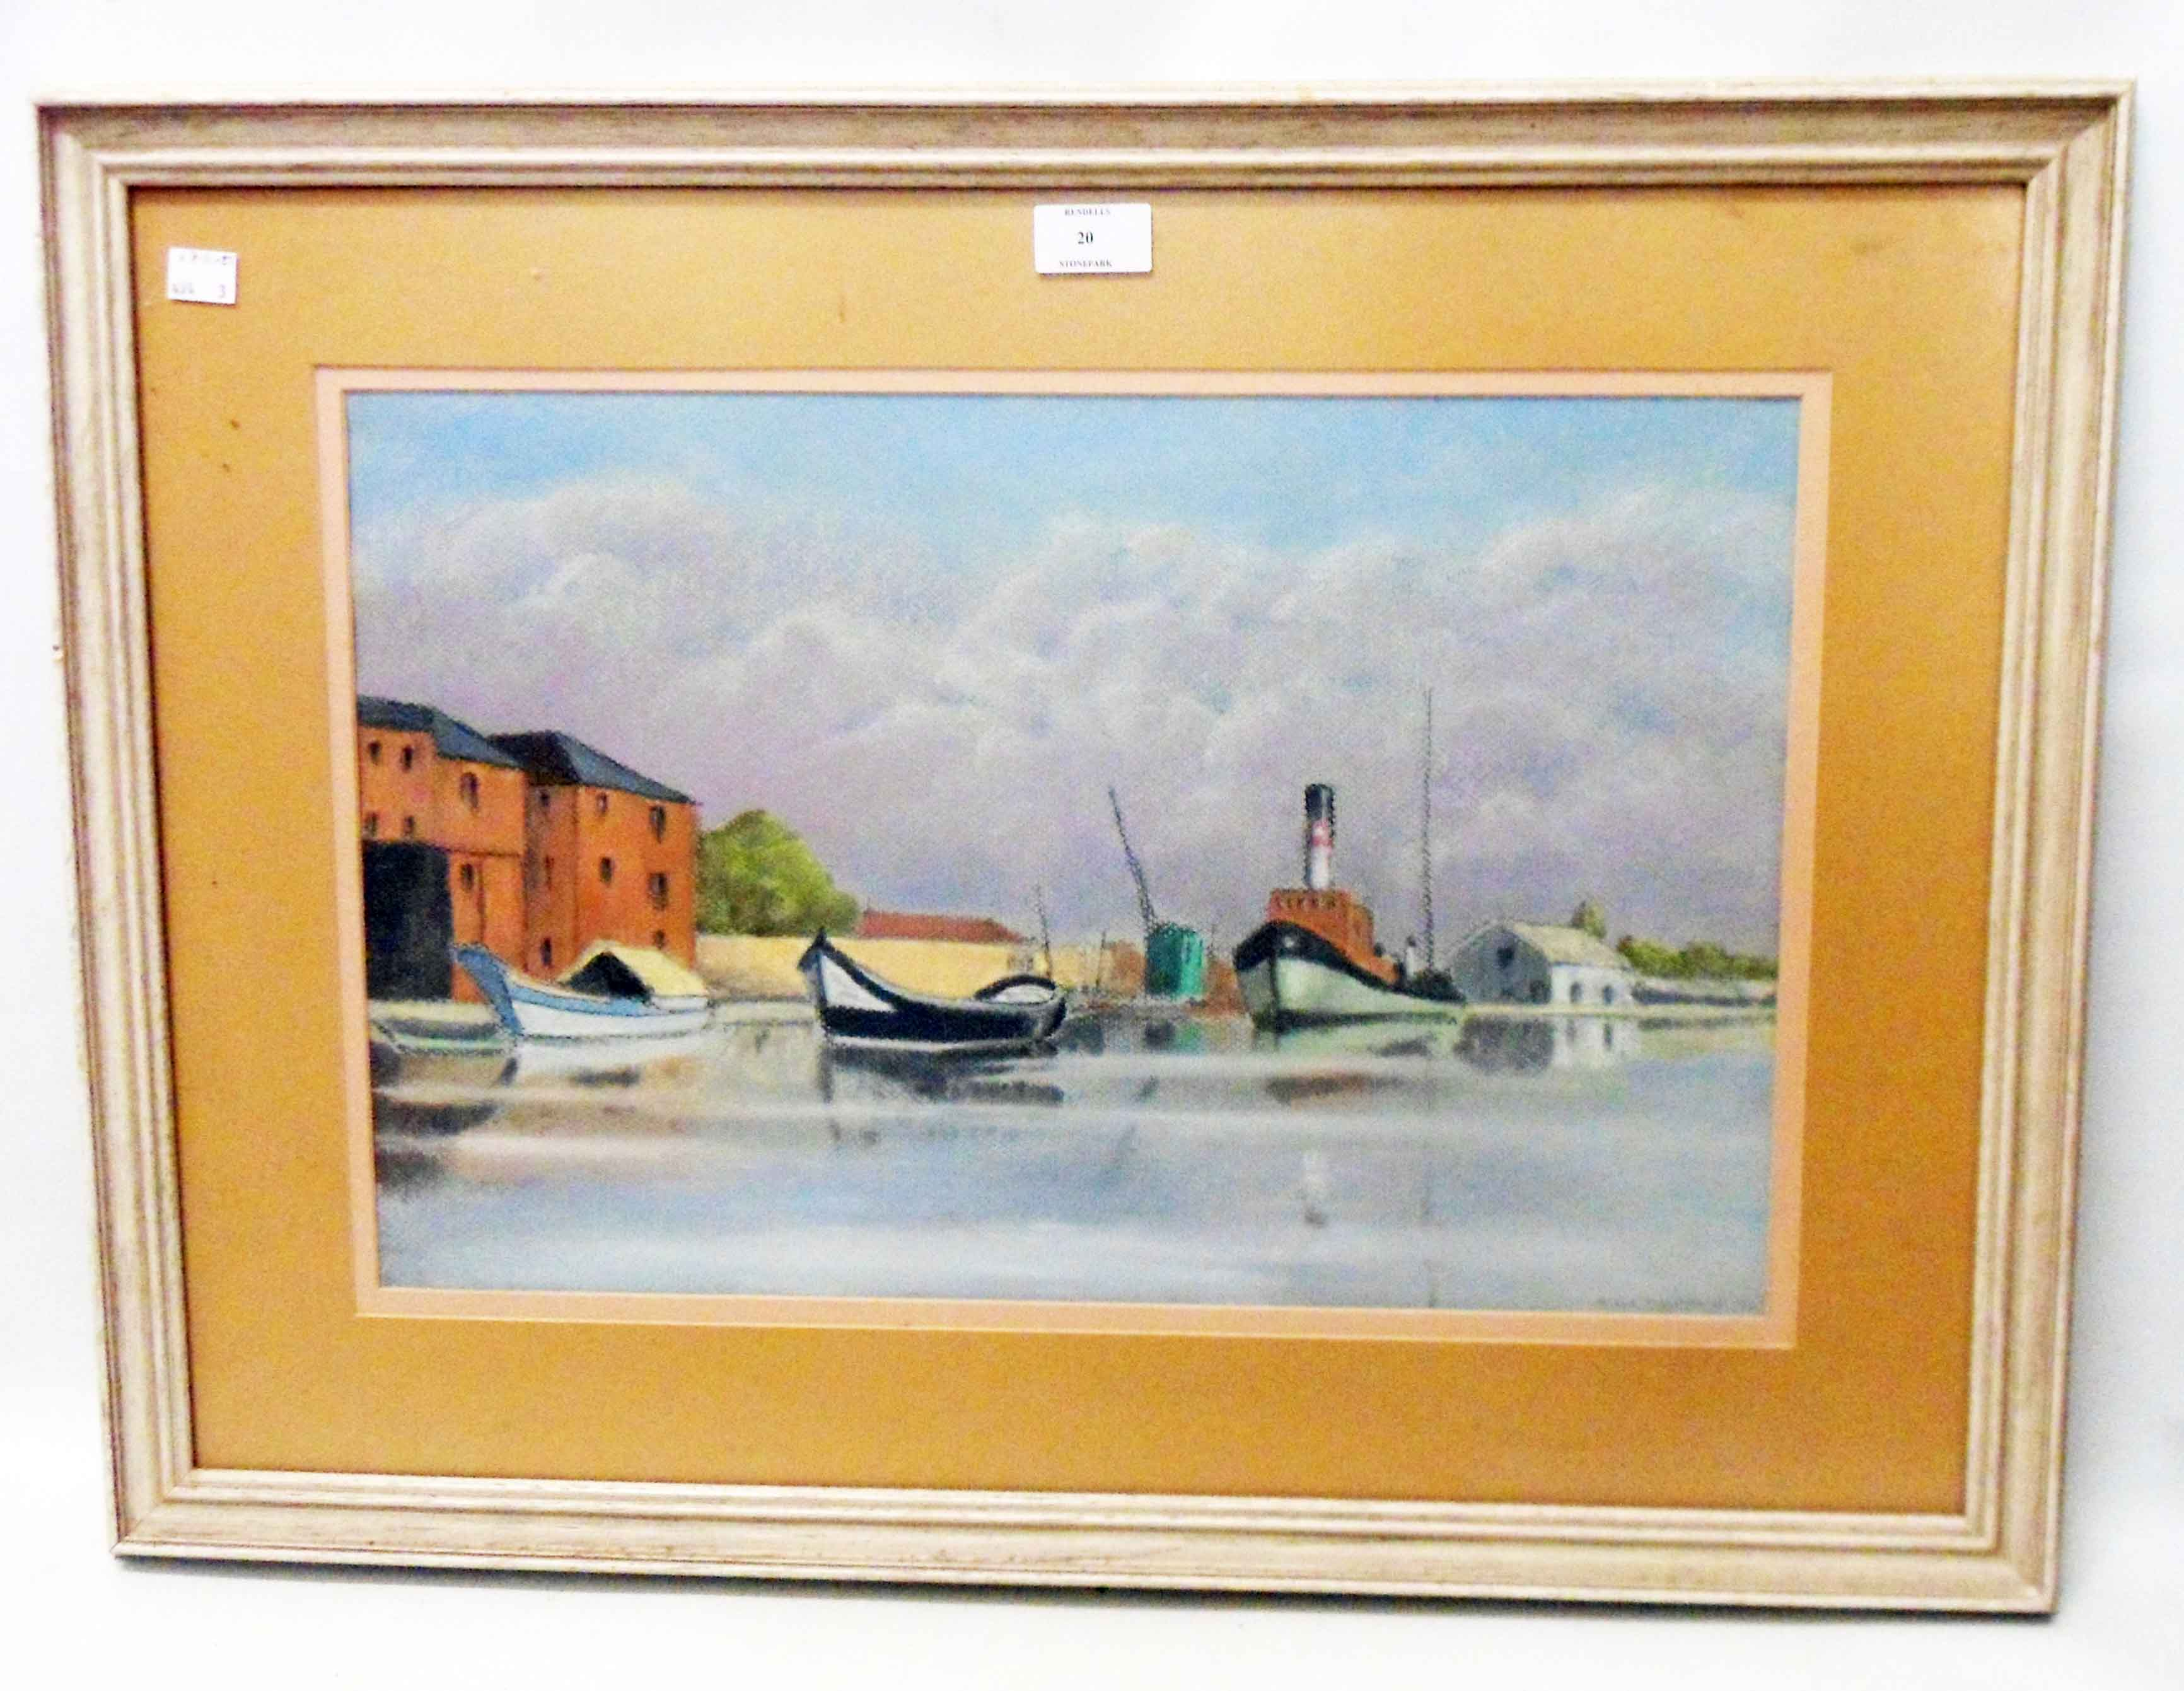 H. C. Channon: a framed pastel drawing, depicting a tug and other vessels on a waterway - signed